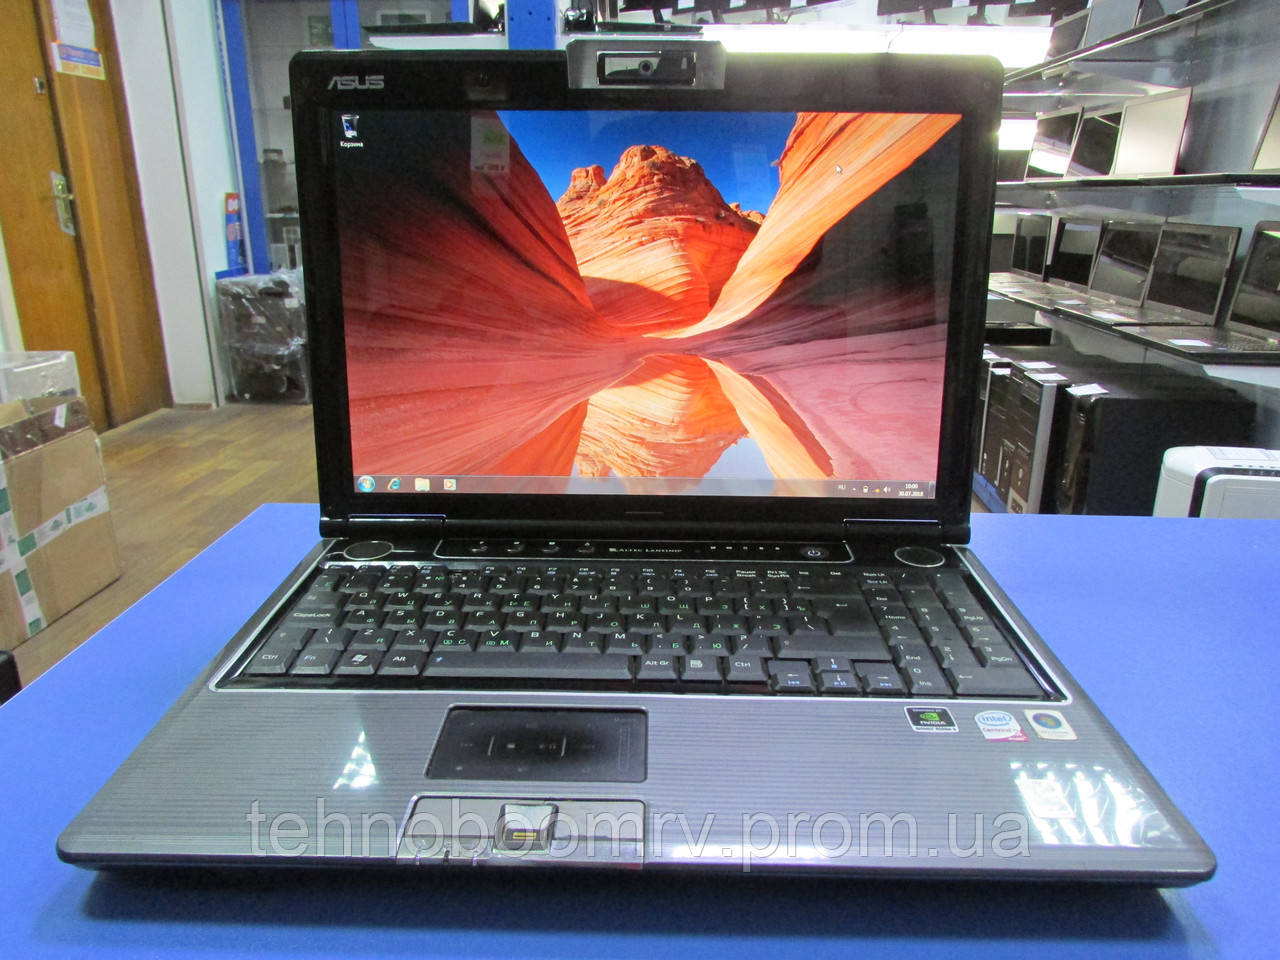 Asus M50V - Intel Core 2Duo T9600 2.8GHz/ nVidia GT 9300M GS/HDD 320GB